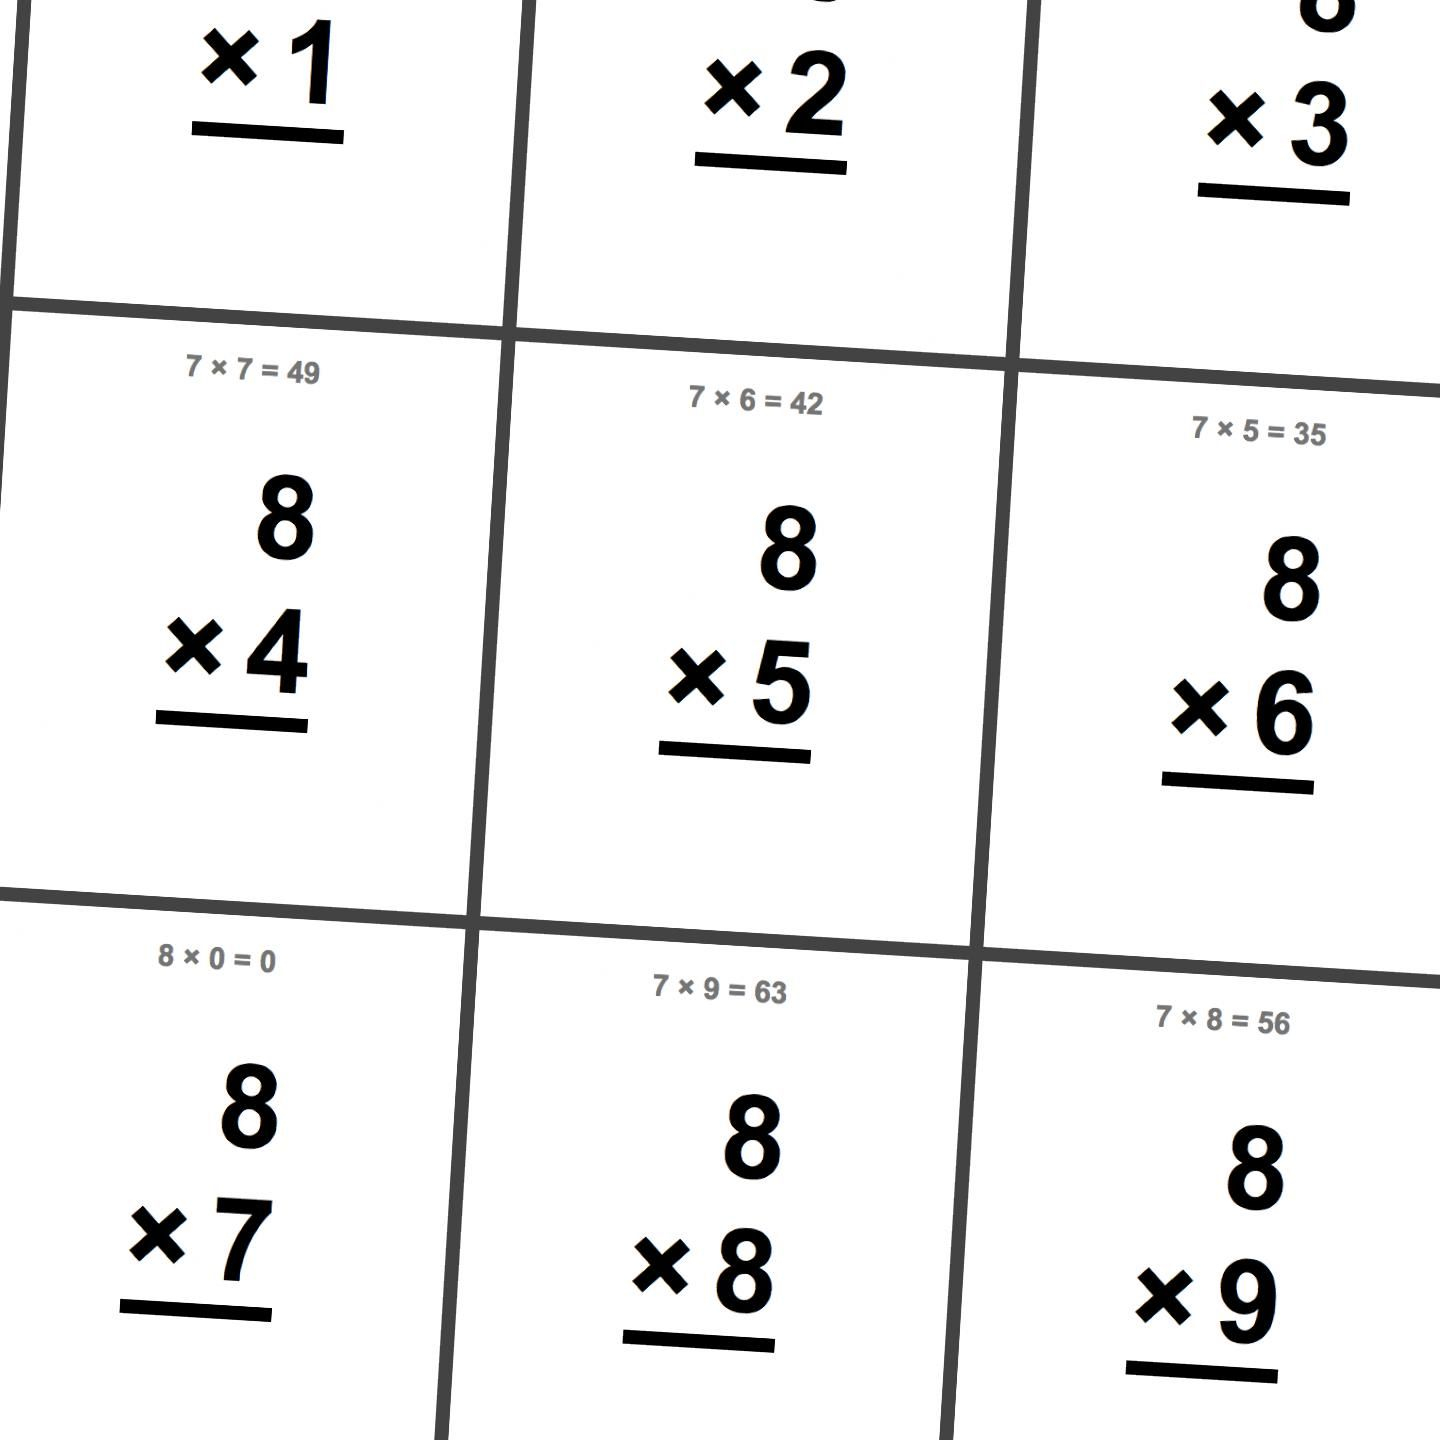 Multiplication Worksheets | Math Flash Cards, Math Flash